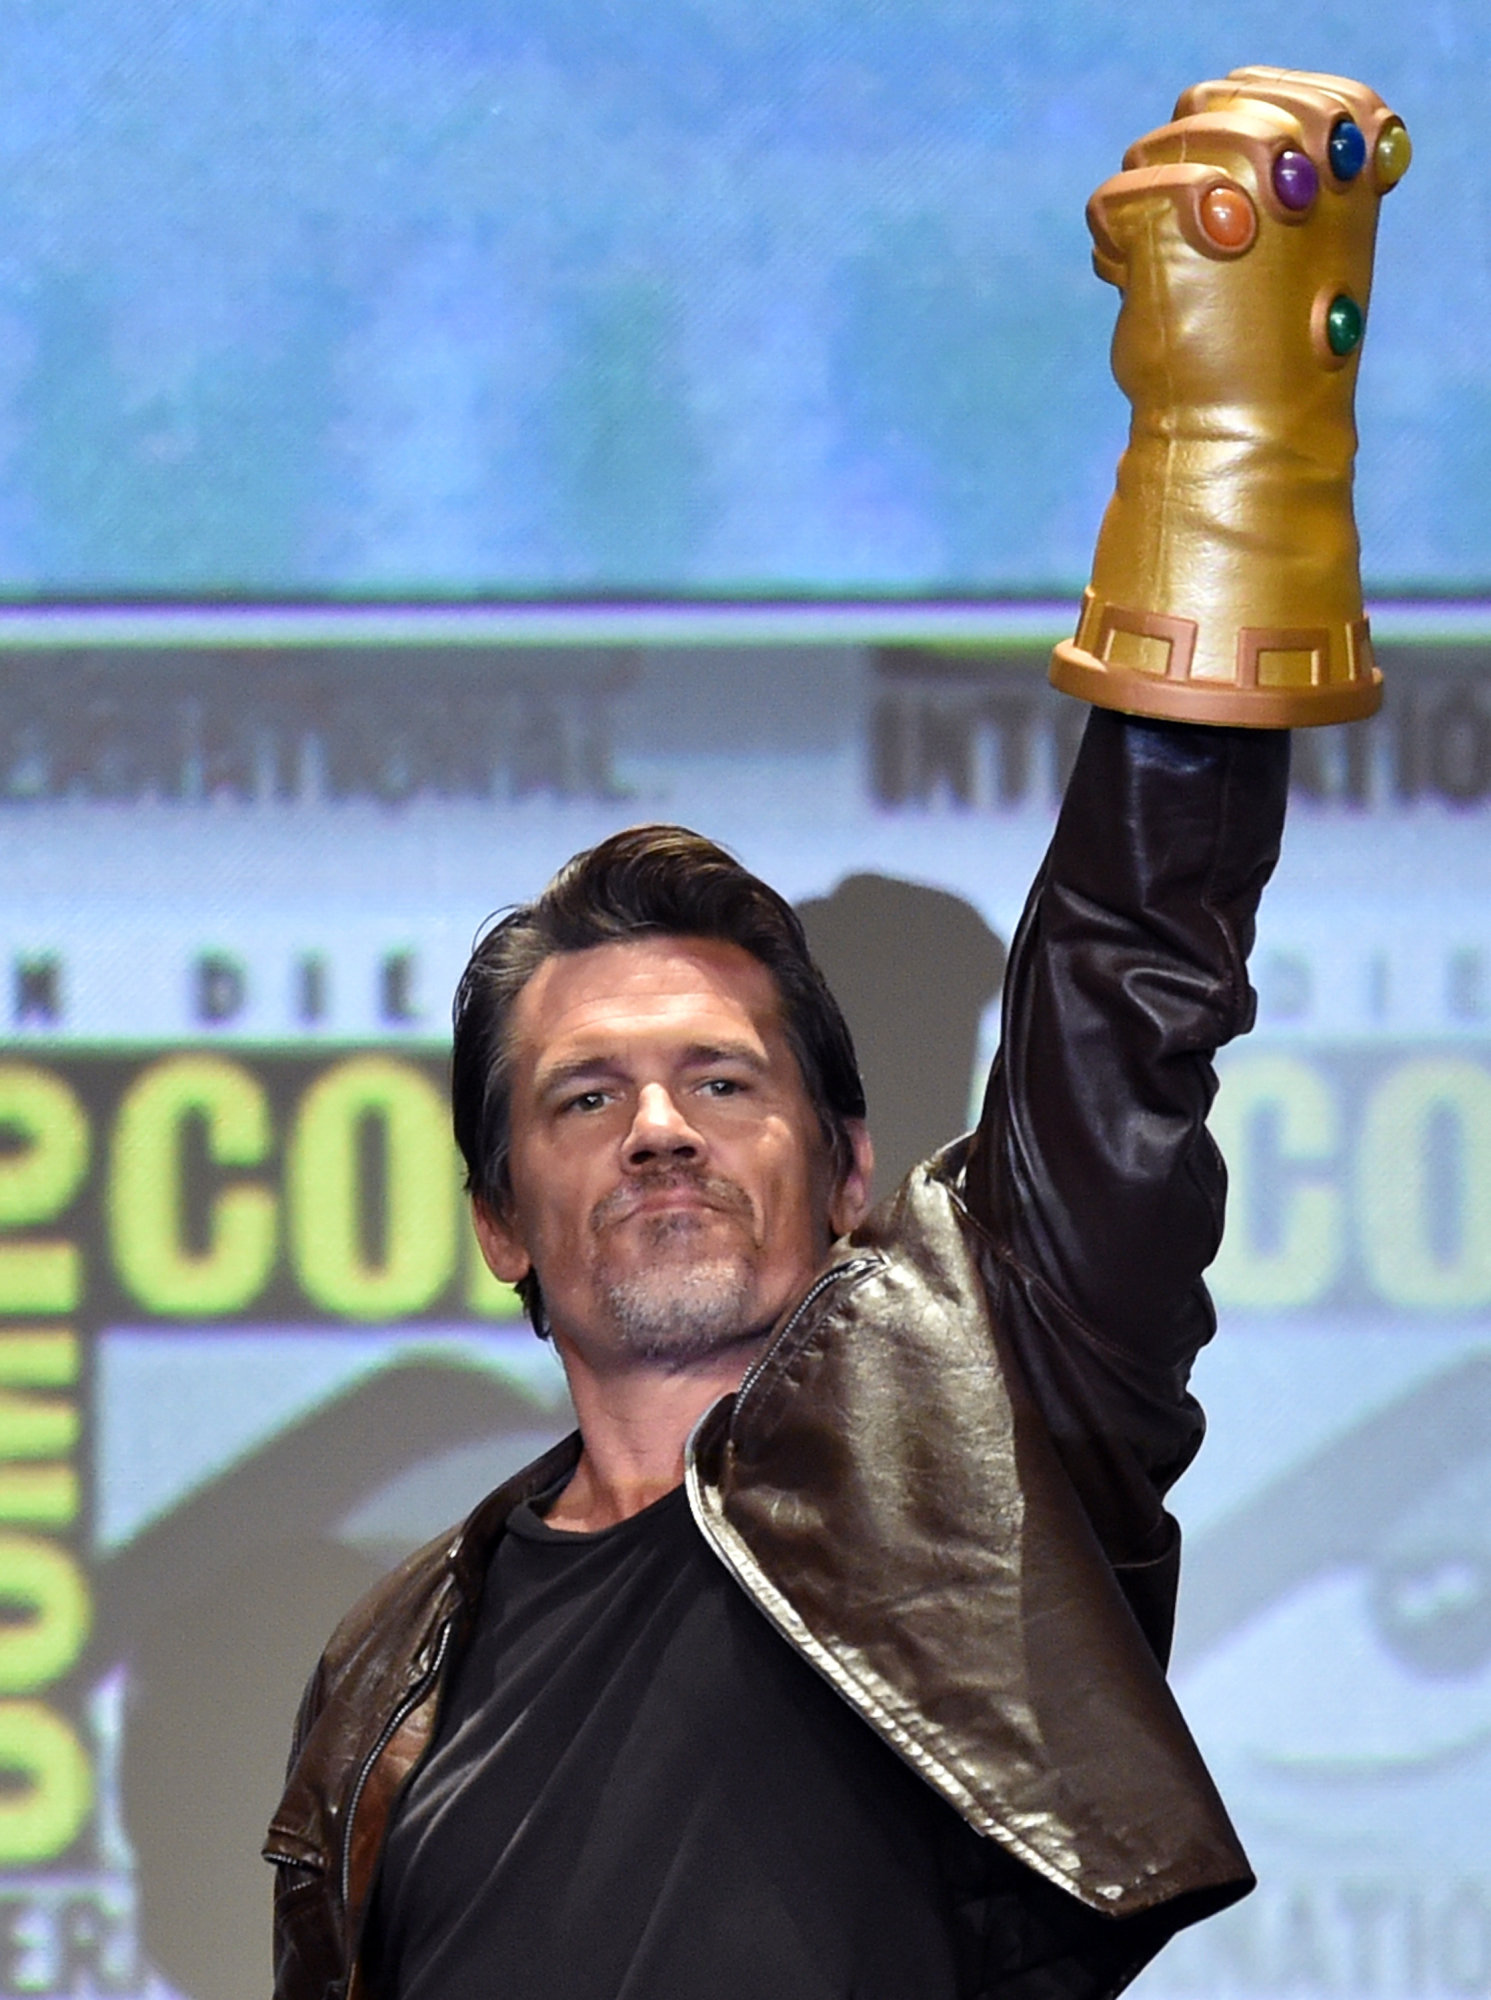 Marvel Officially Reveals Josh Brolin As Thanos! - Nerdy ... Guardians Of The Galaxy Thanos Actor